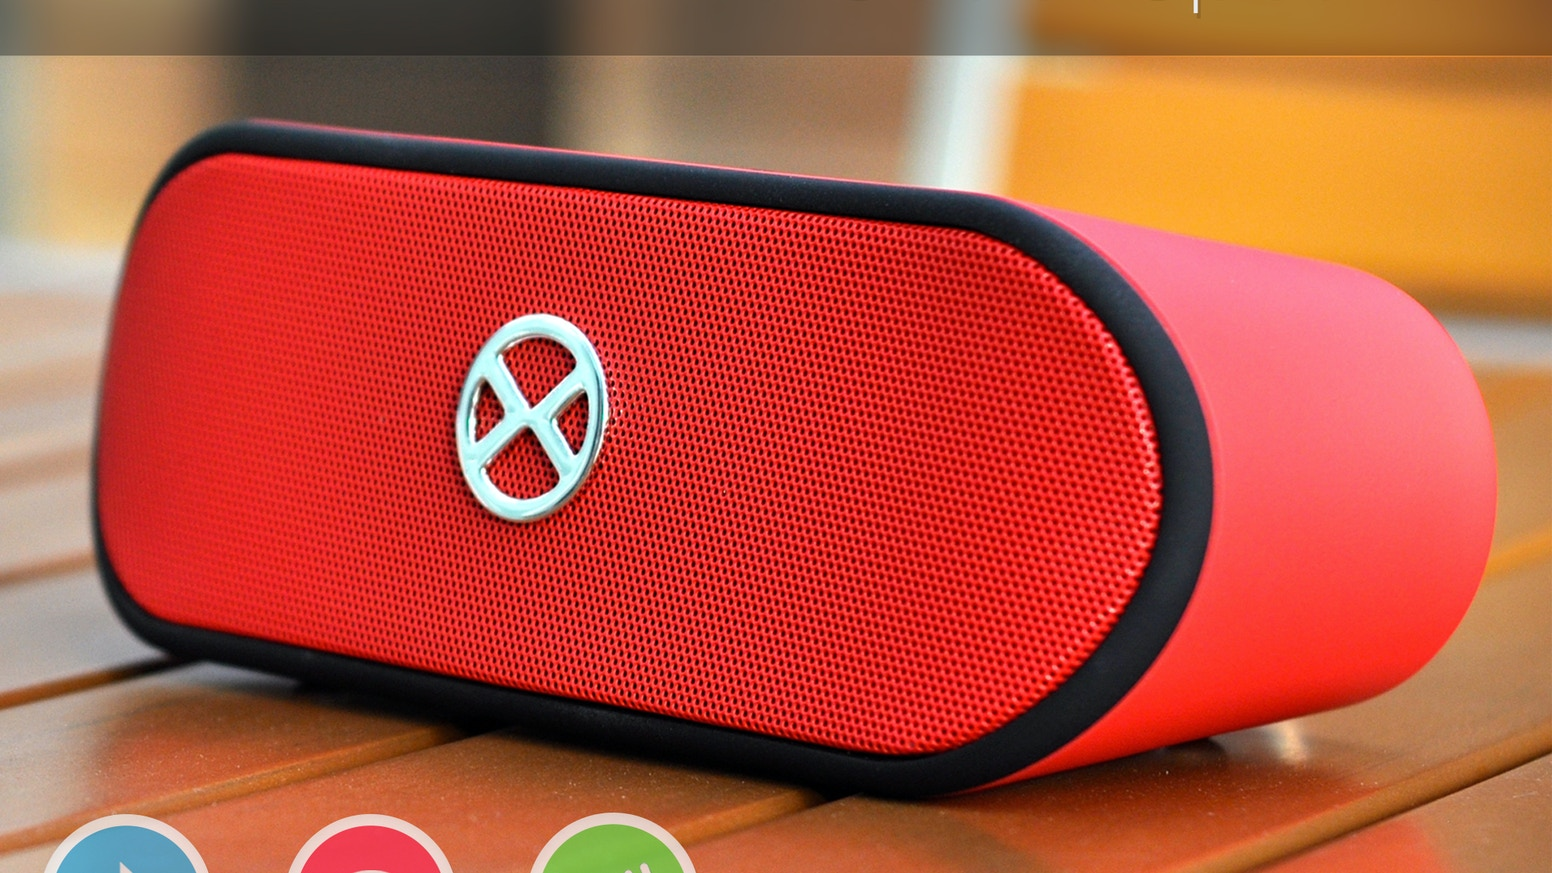 JookBox WiFi speaker lets the entire party que & play music